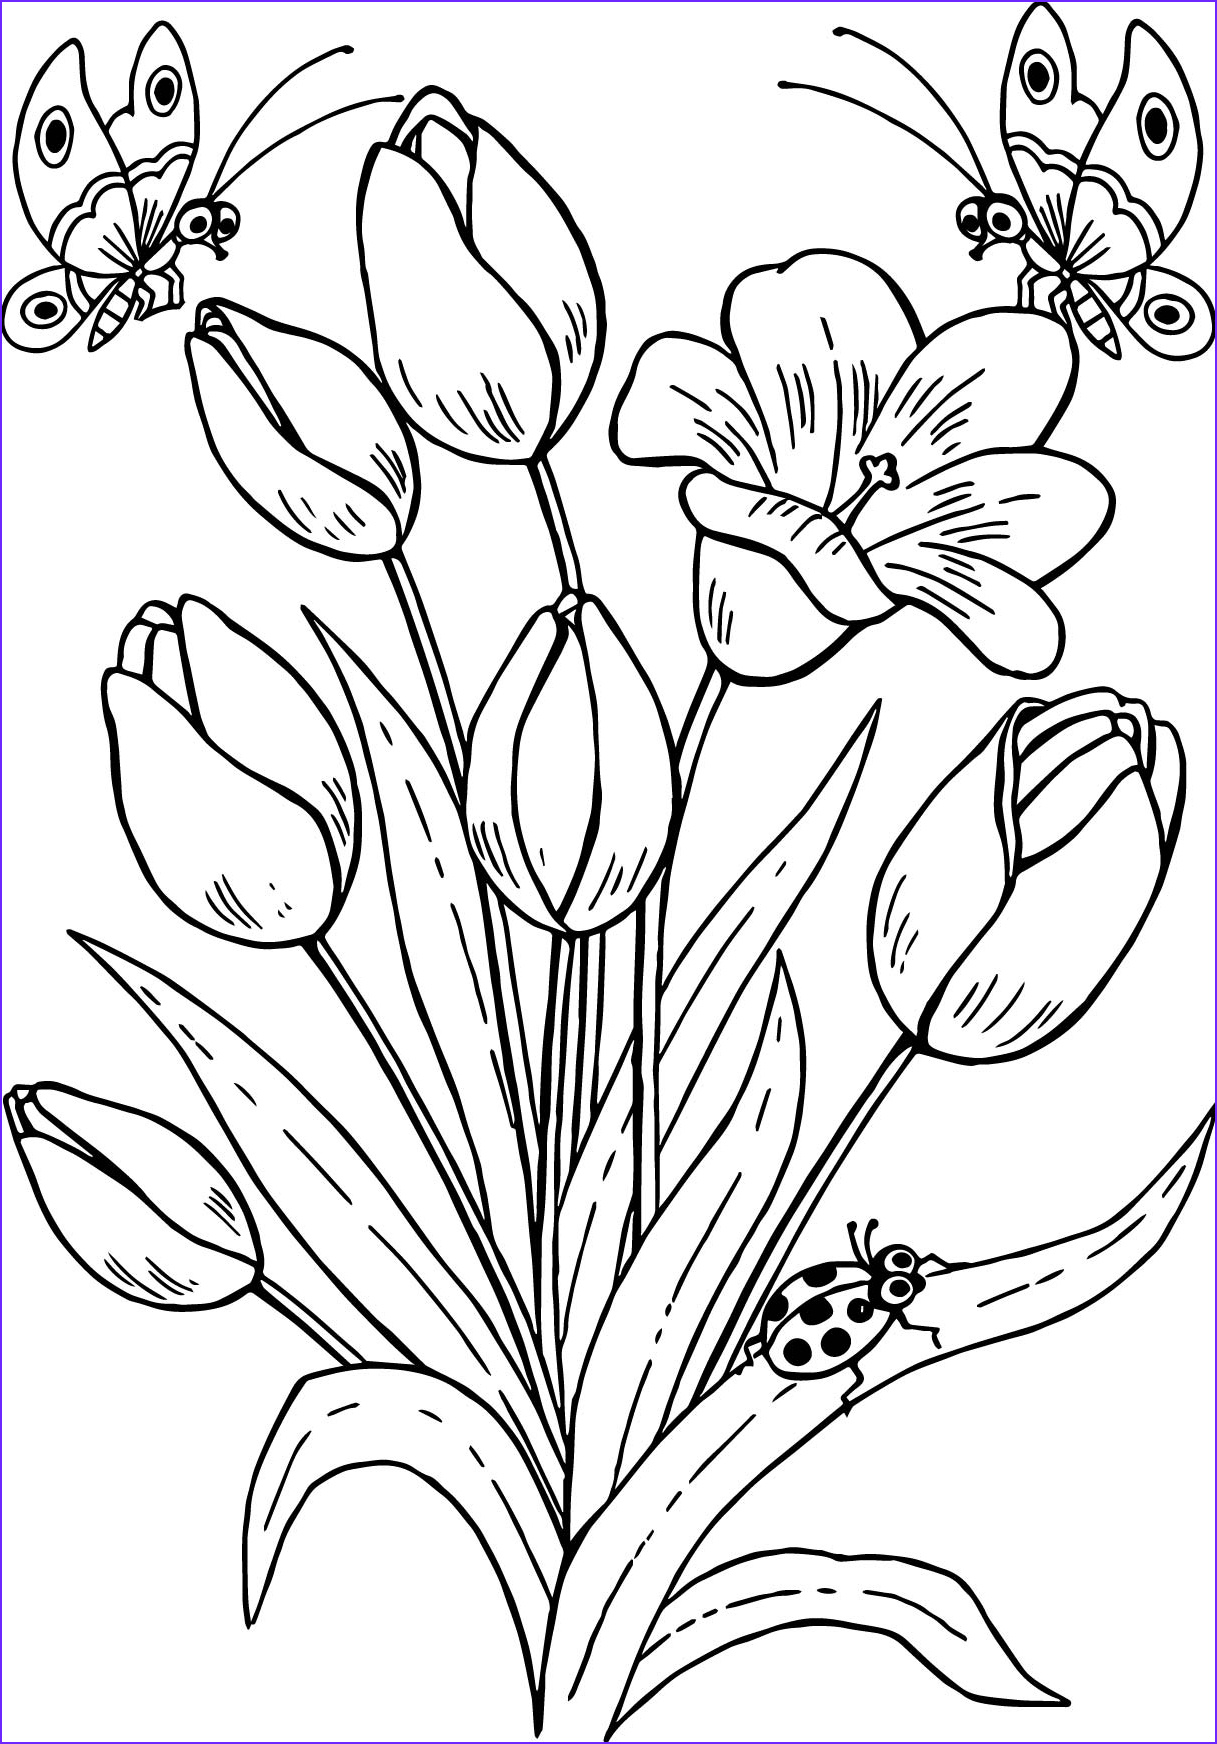 Printable Coloring Pages Of Flowers and butterflies Luxury Photos Drawing butterfly Flowers Tulips Coloring Page